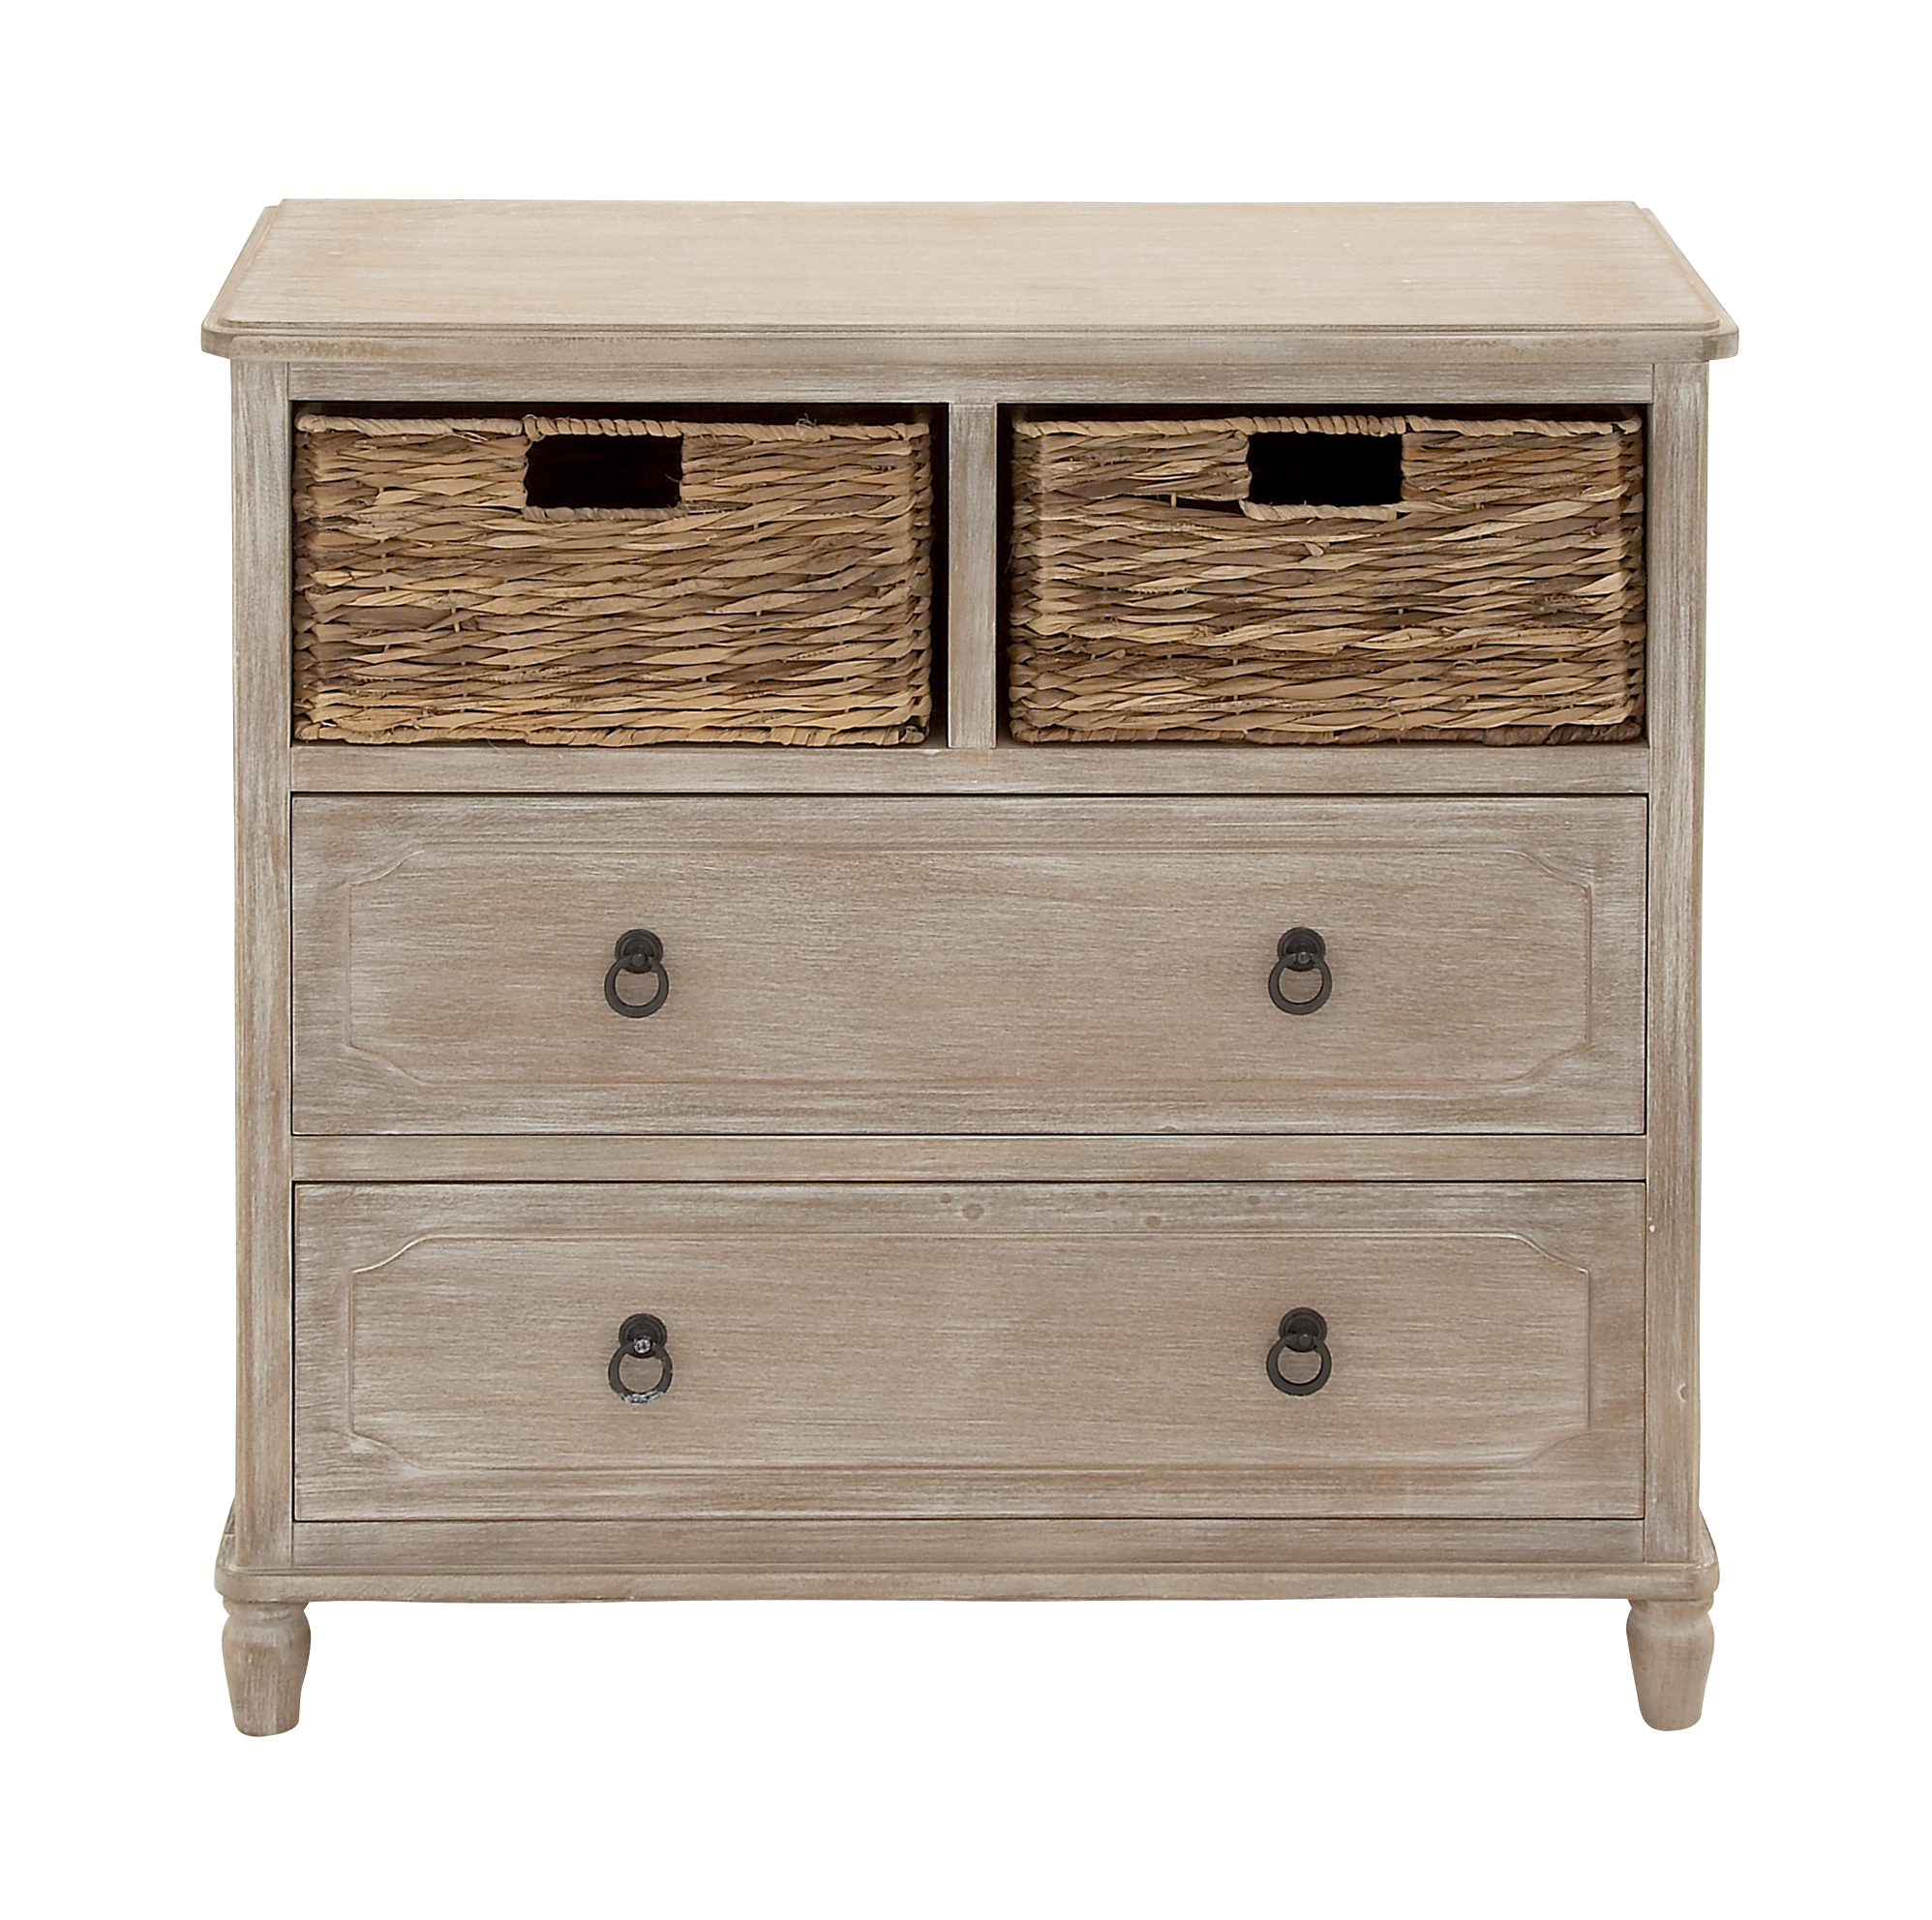 Decmode Farmhouse Square Beige Wood Cabinet w/ Natural Wicker Storage Basket Drawers & Whitewash Finish